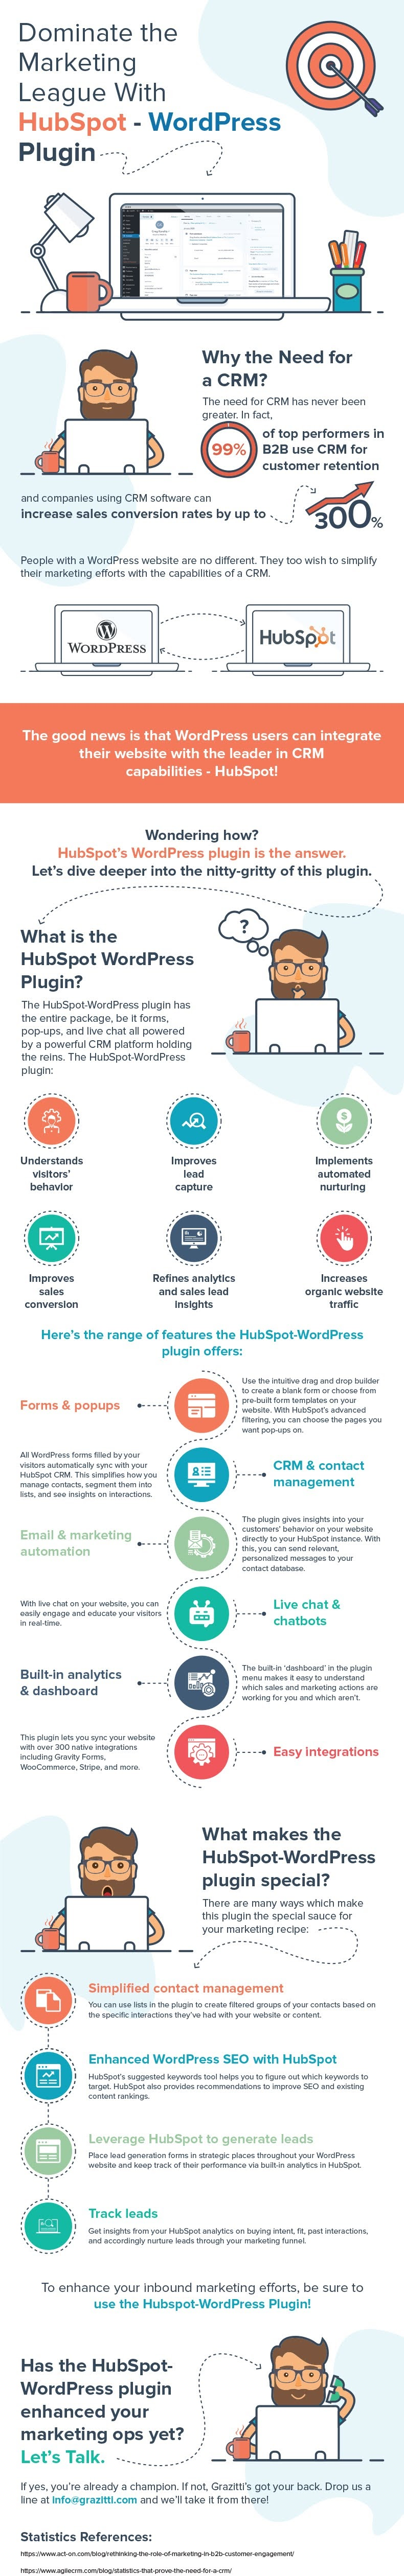 dominate-the-marketing-league-with-hubspot-wordpress-plugin-infographic